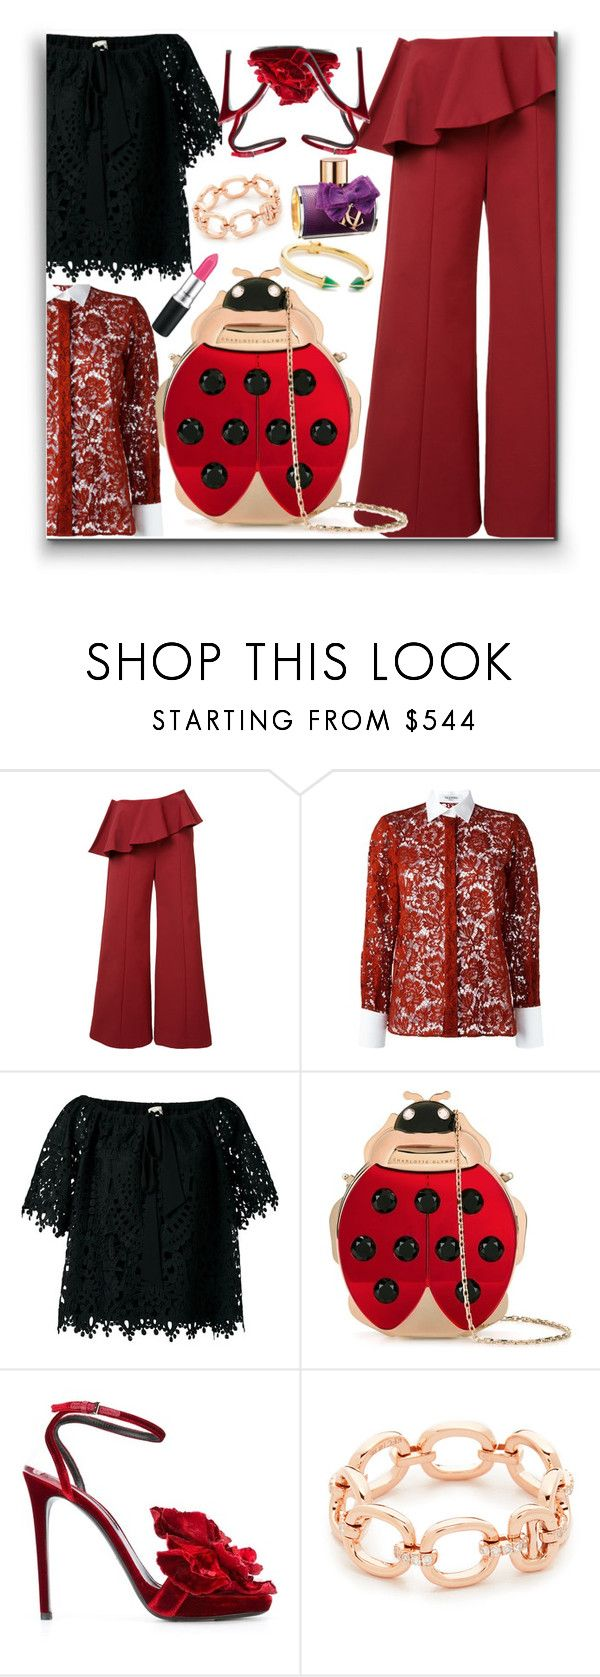 """""""Spring Palazzo!!"""" by stylediva20 ❤ liked on Polyvore featuring Rosie Assoulin, Valentino, Temperley London, Charlotte Olympia, Ermanno Scervino, EF Collection, Vita Fede and ASOS"""